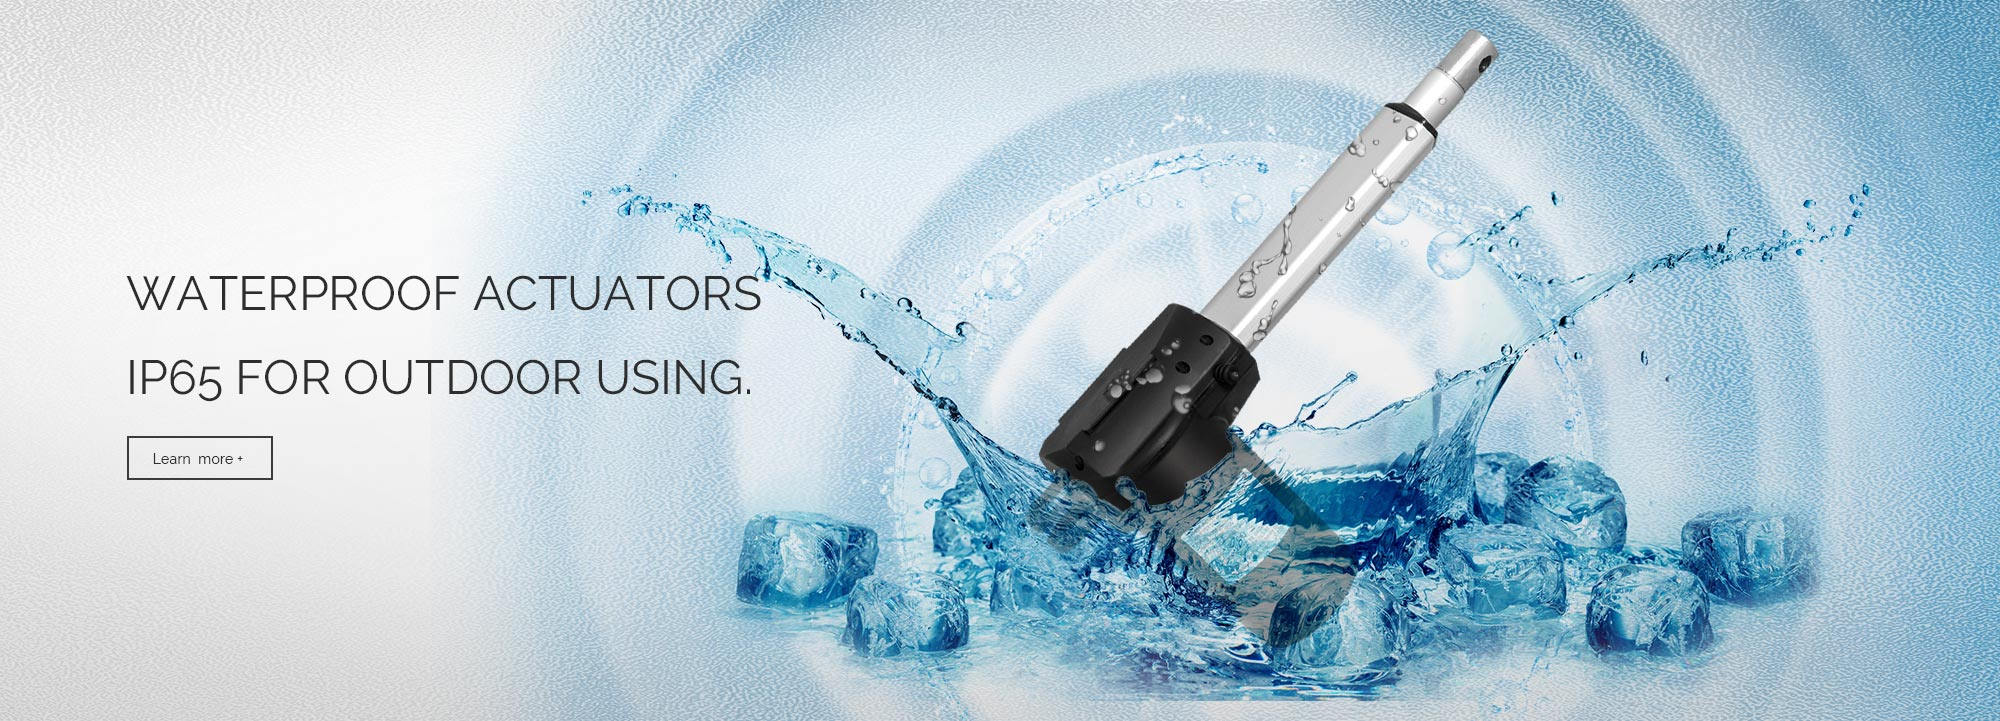 waterproof actuators ip65 for outdoor using